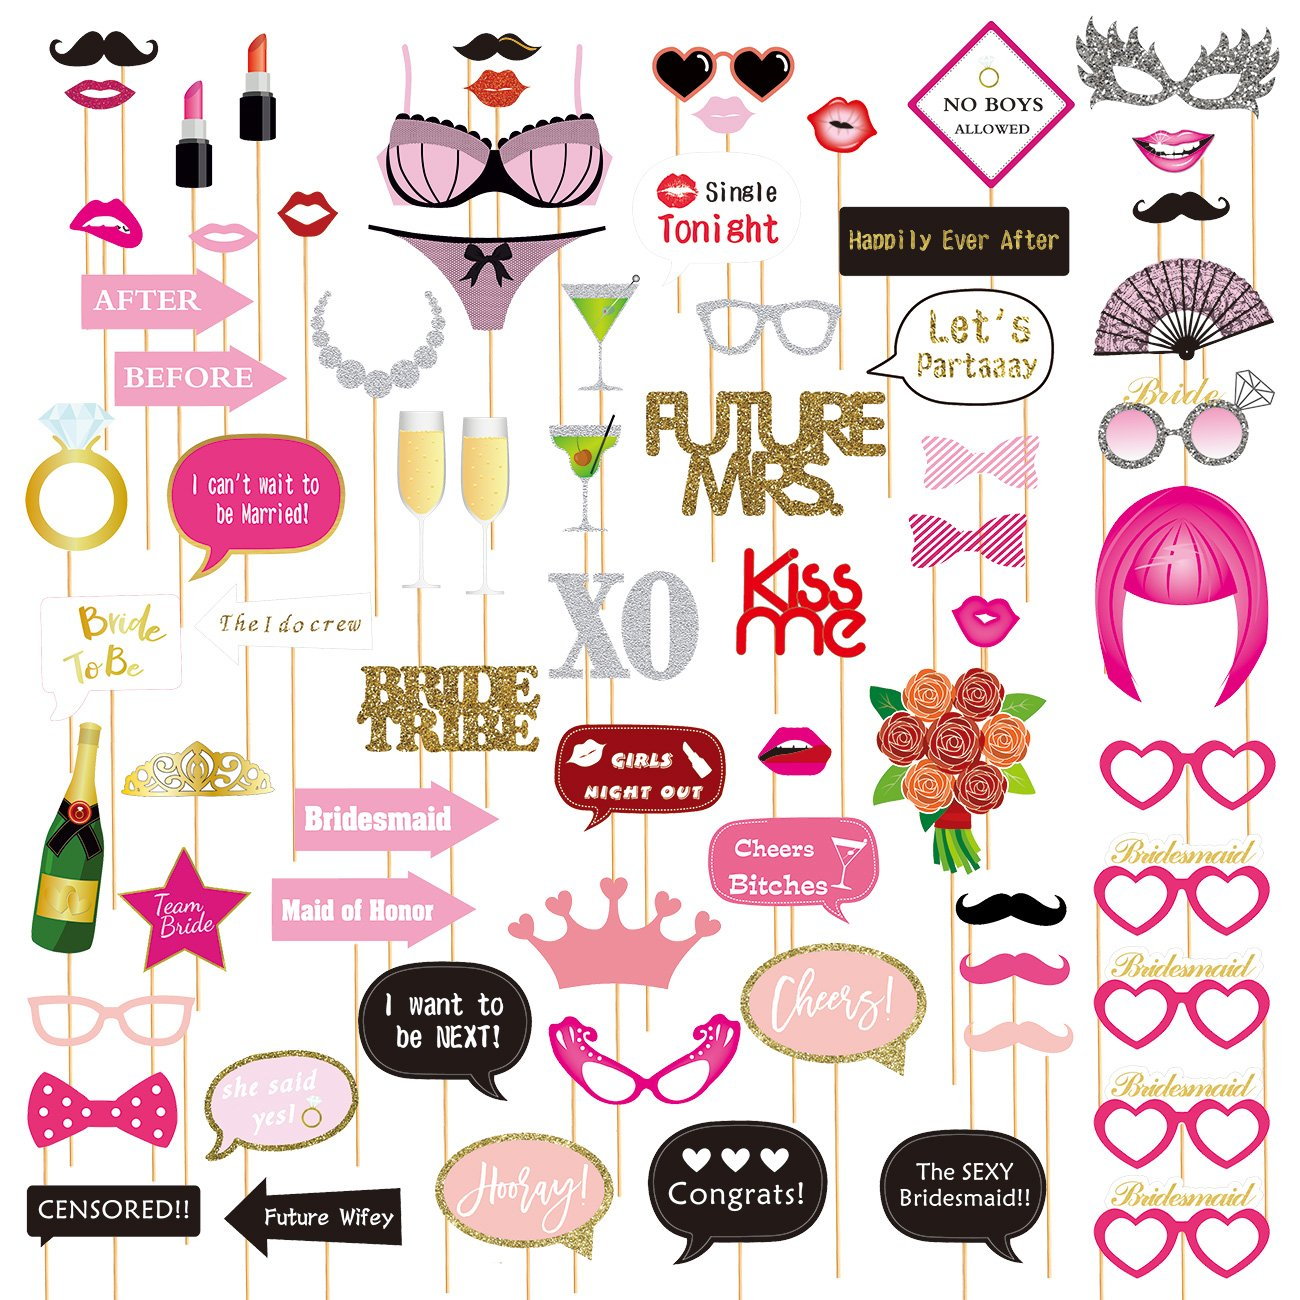 72-Pack Bachelorette Party Photo Booth Props - Bridal Party Props, Selfie Props, Funny Prop Signs, Assorted Designs by Juvale